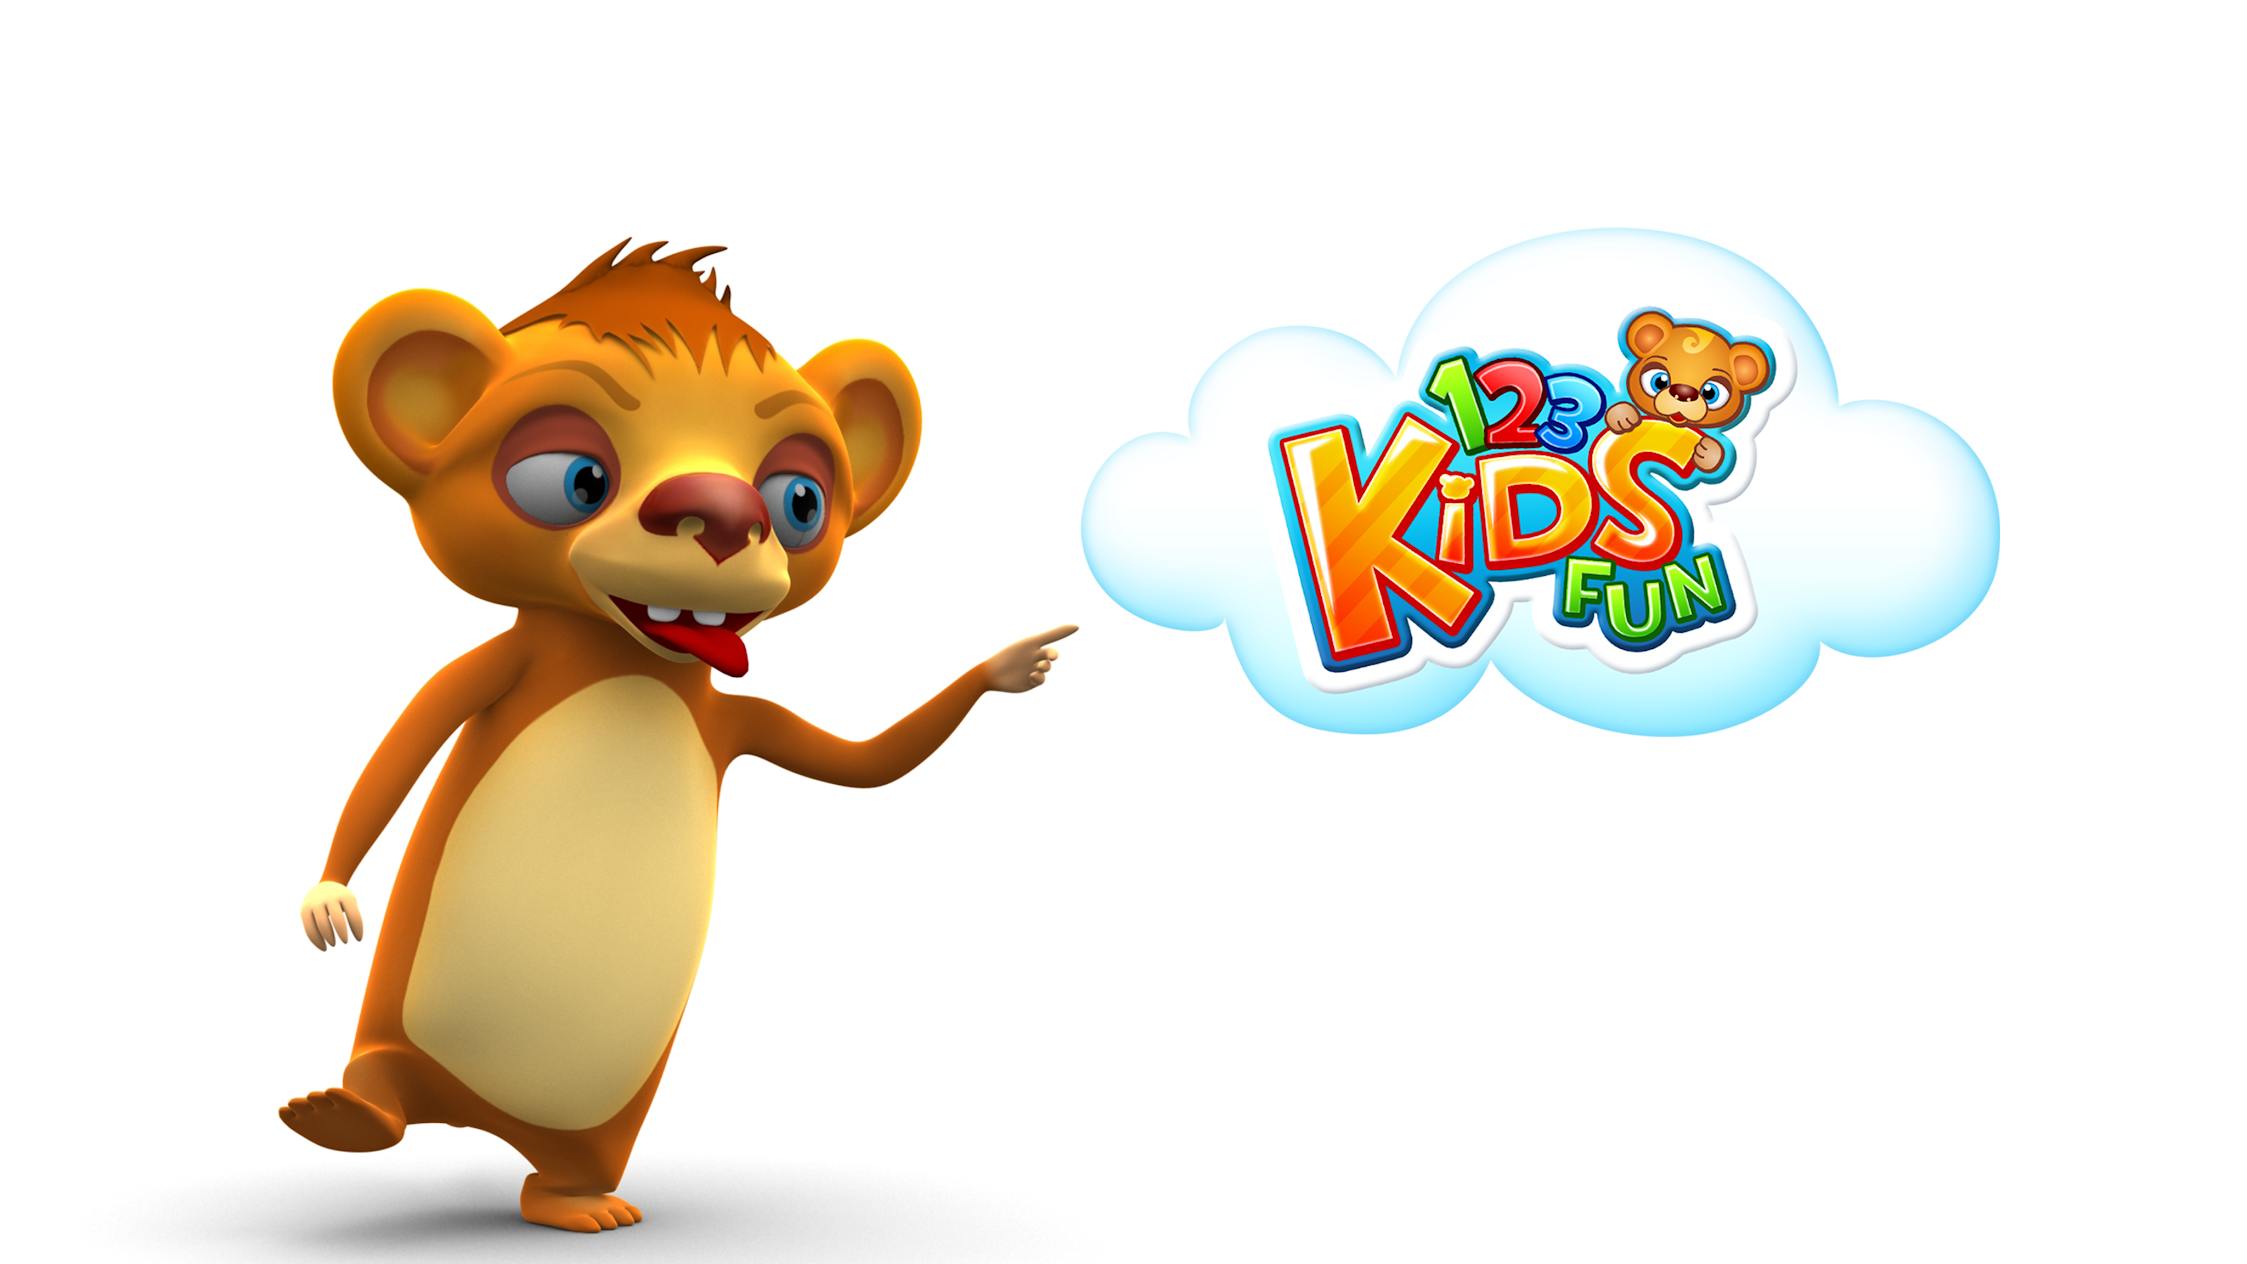 123 kids fun apps educational apps for kids android apps on